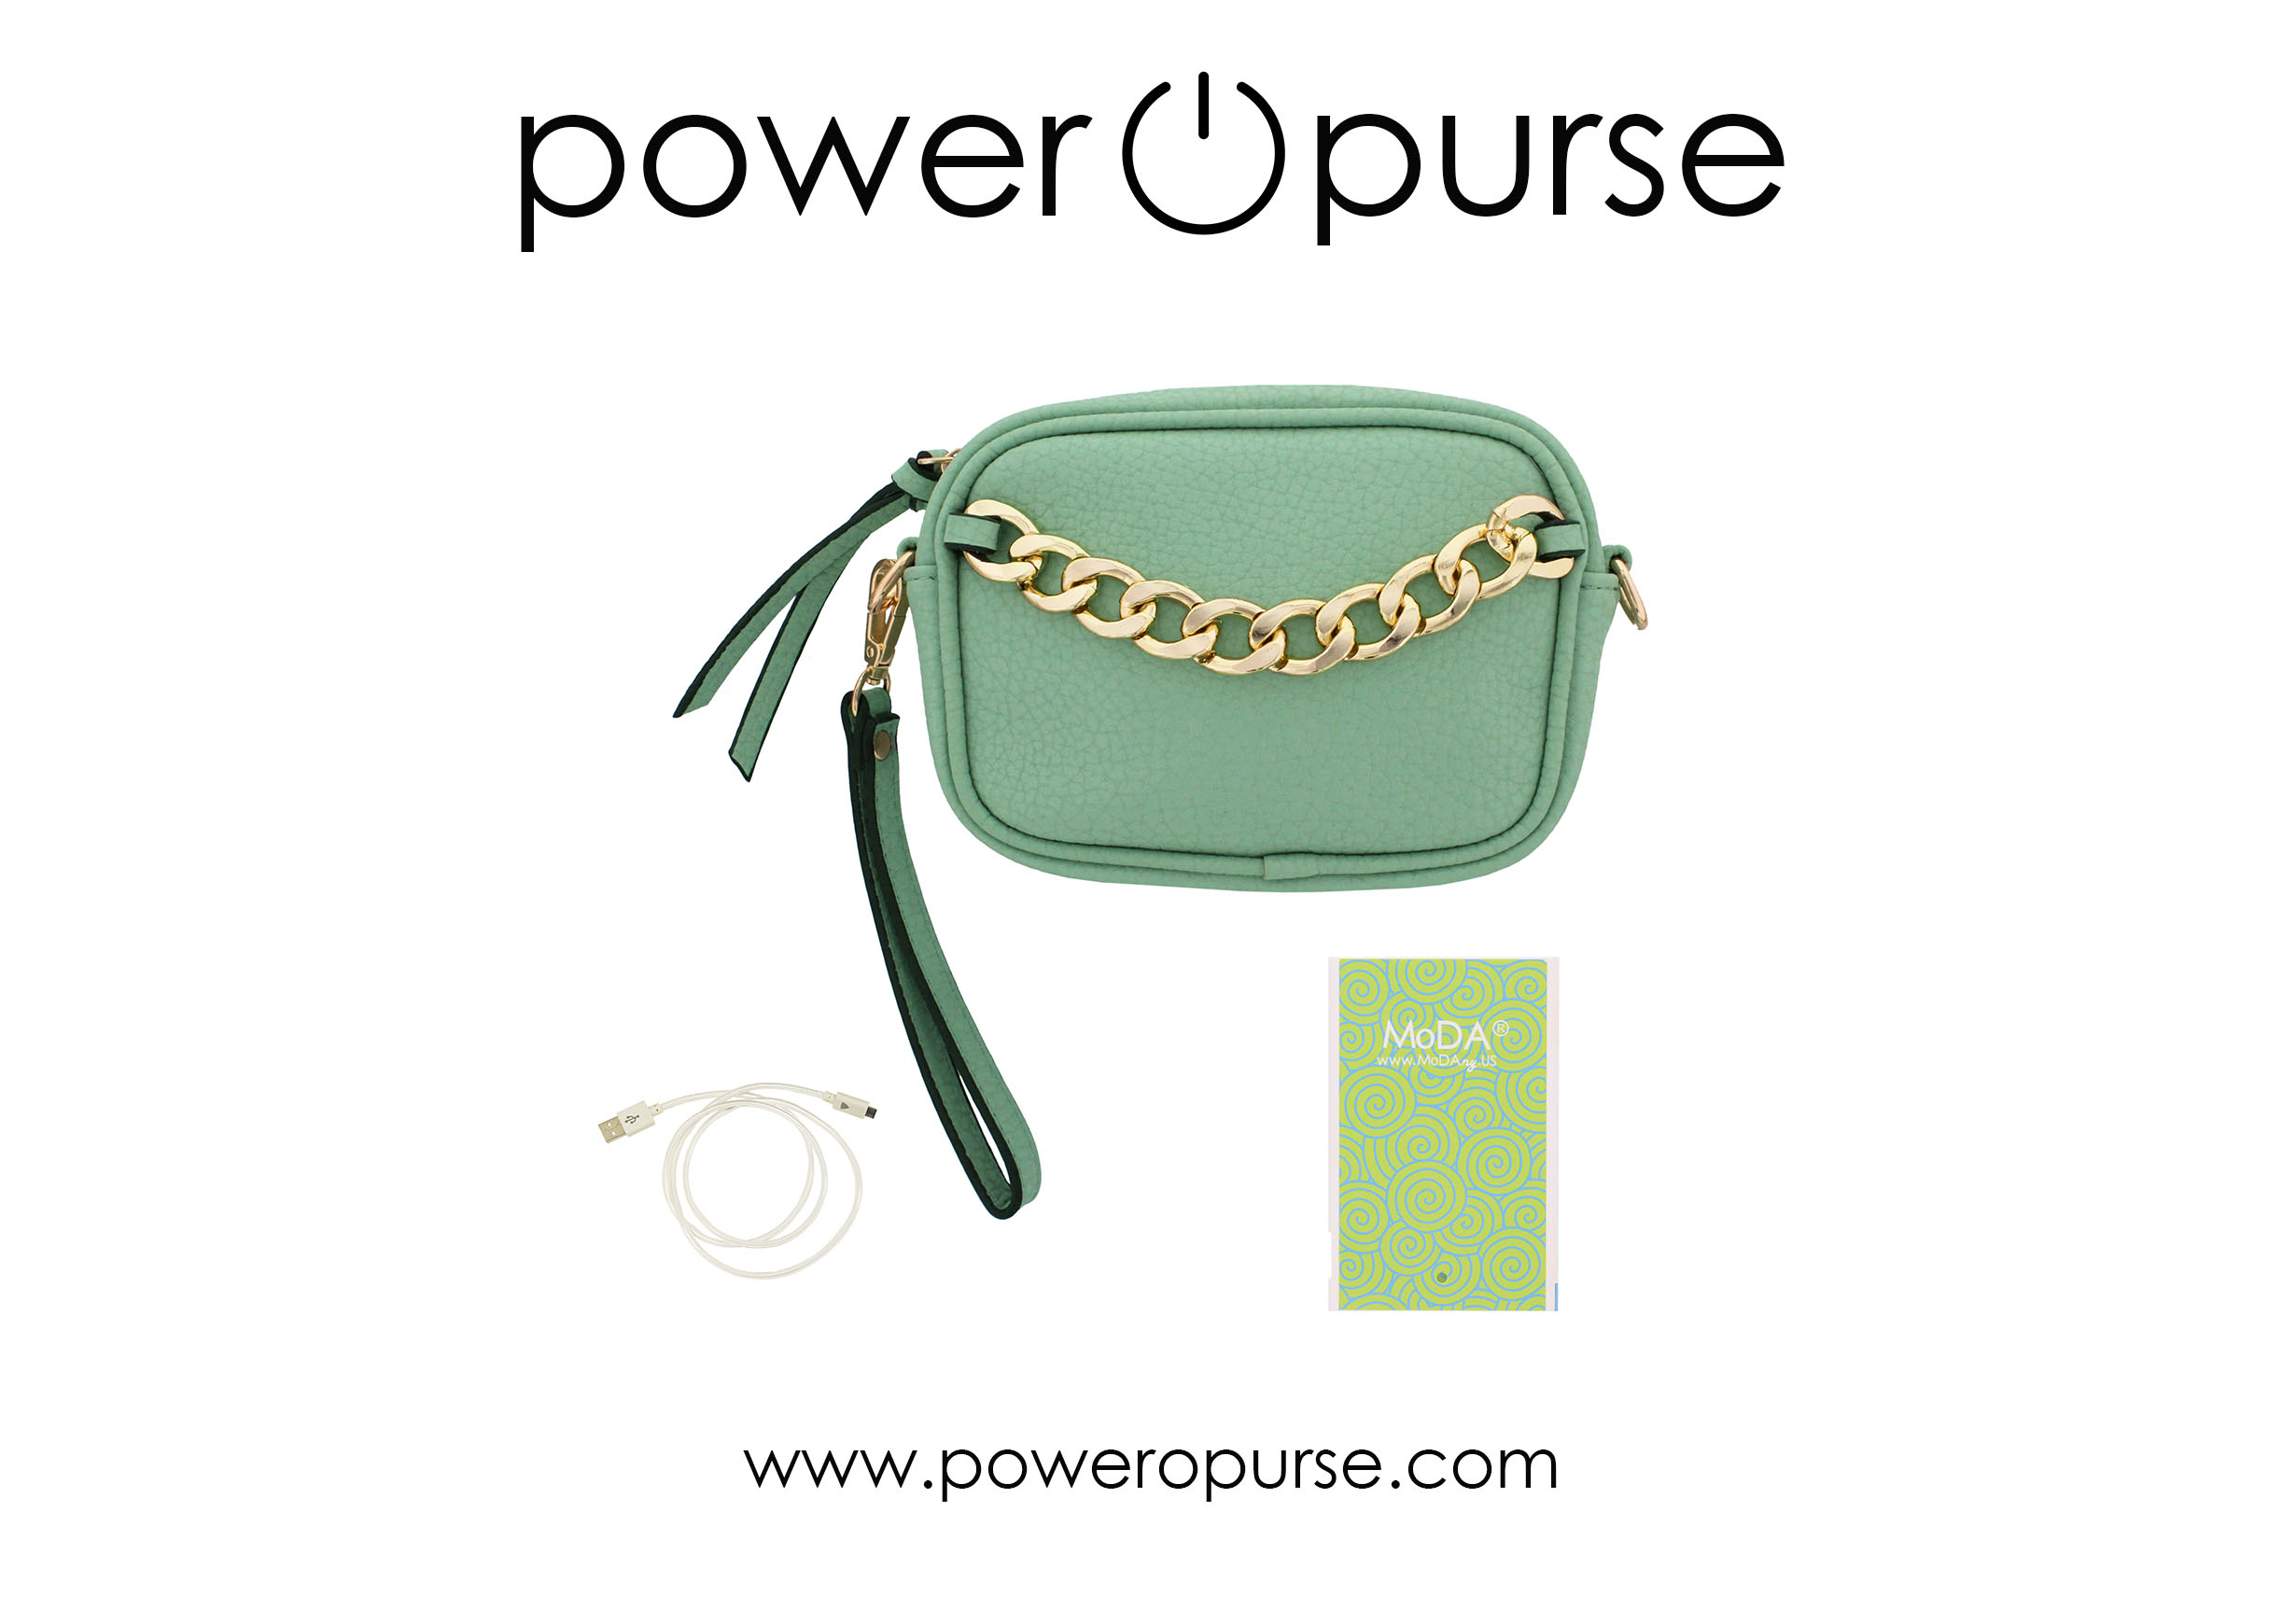 Power O Purse Chain Deco Mobile X Body + Ultra Slip Super Light Power Bank + Flash Charging Cable